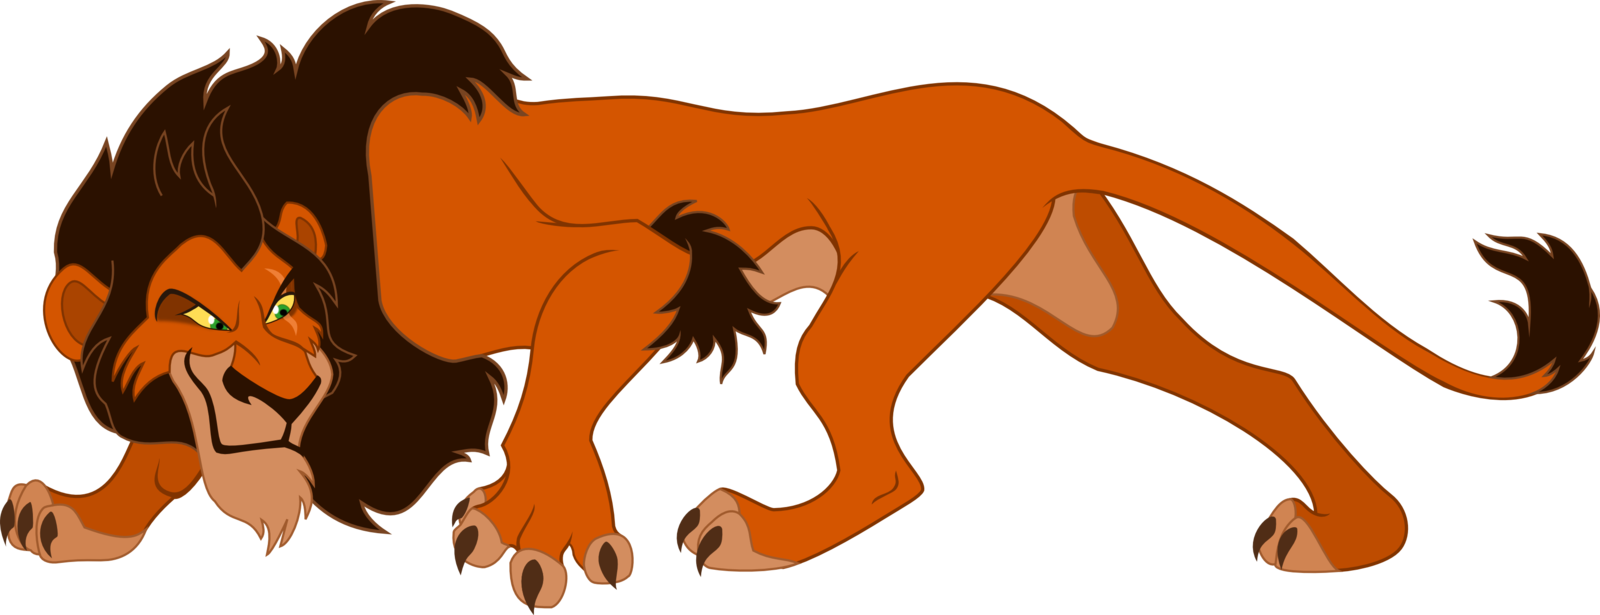 Lion King Scar Clipart 20 Free Cliparts Download Images On